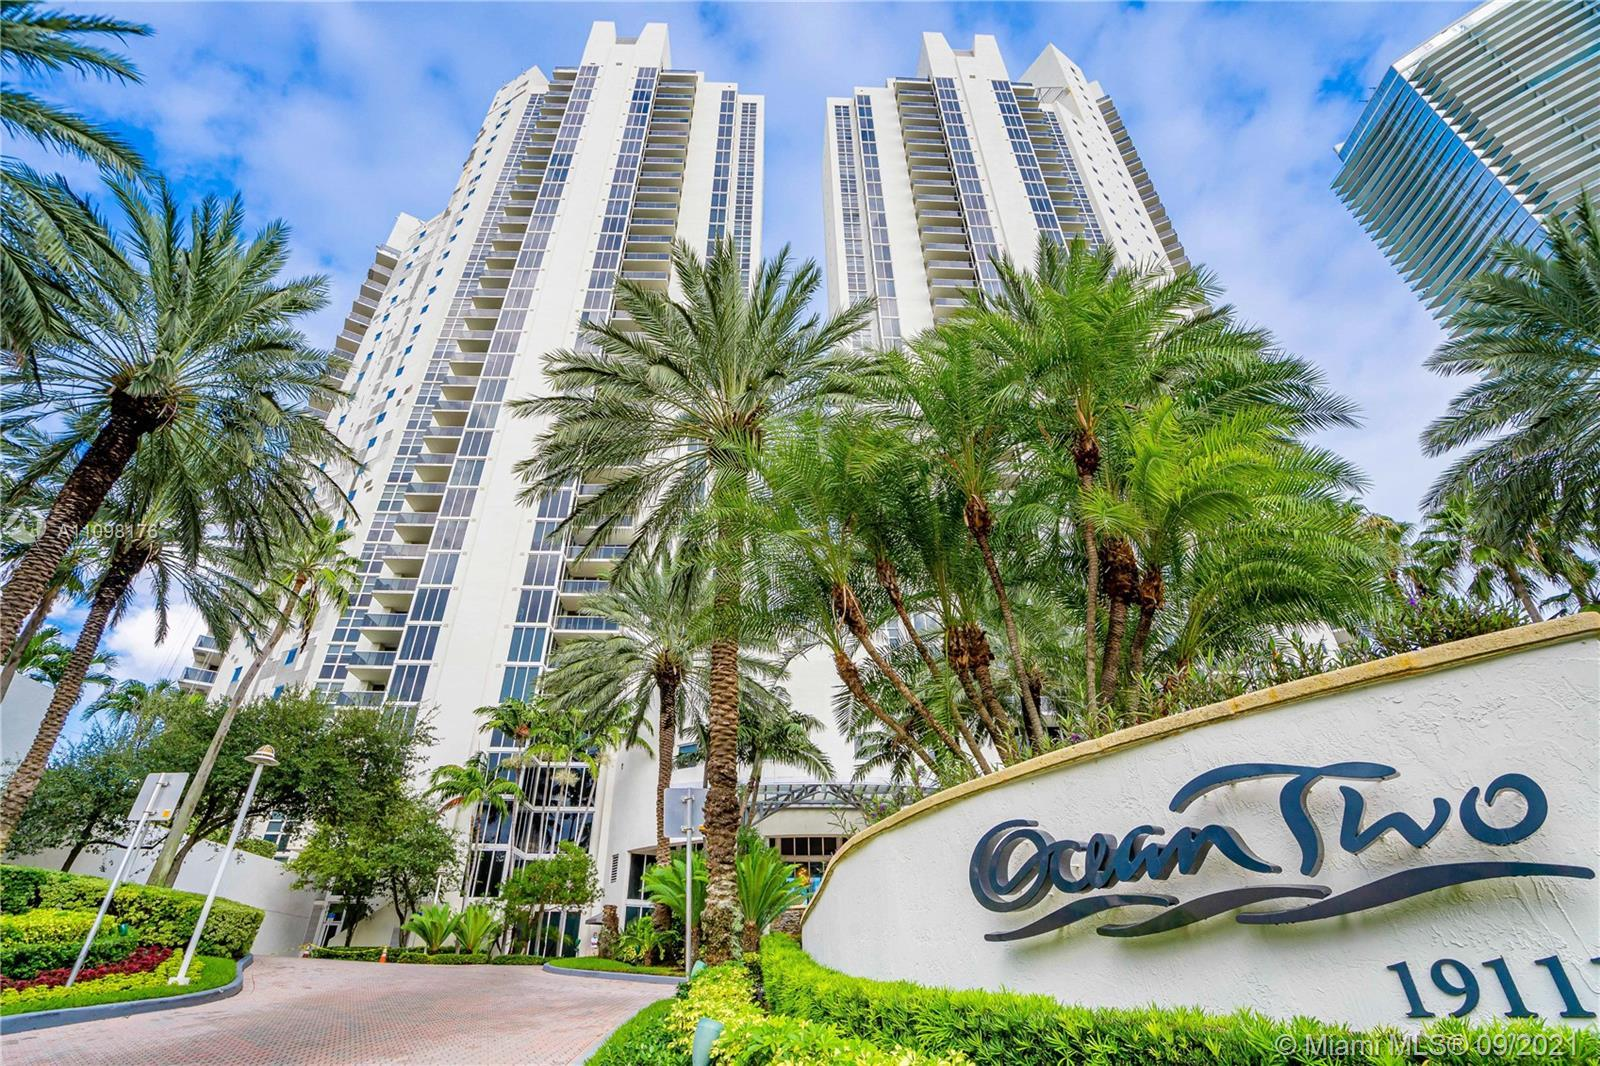 Ocean Two Condo in Sunny Isles Beach. Amazing 3 beds/3 baths unit with exclusive private foyer entry